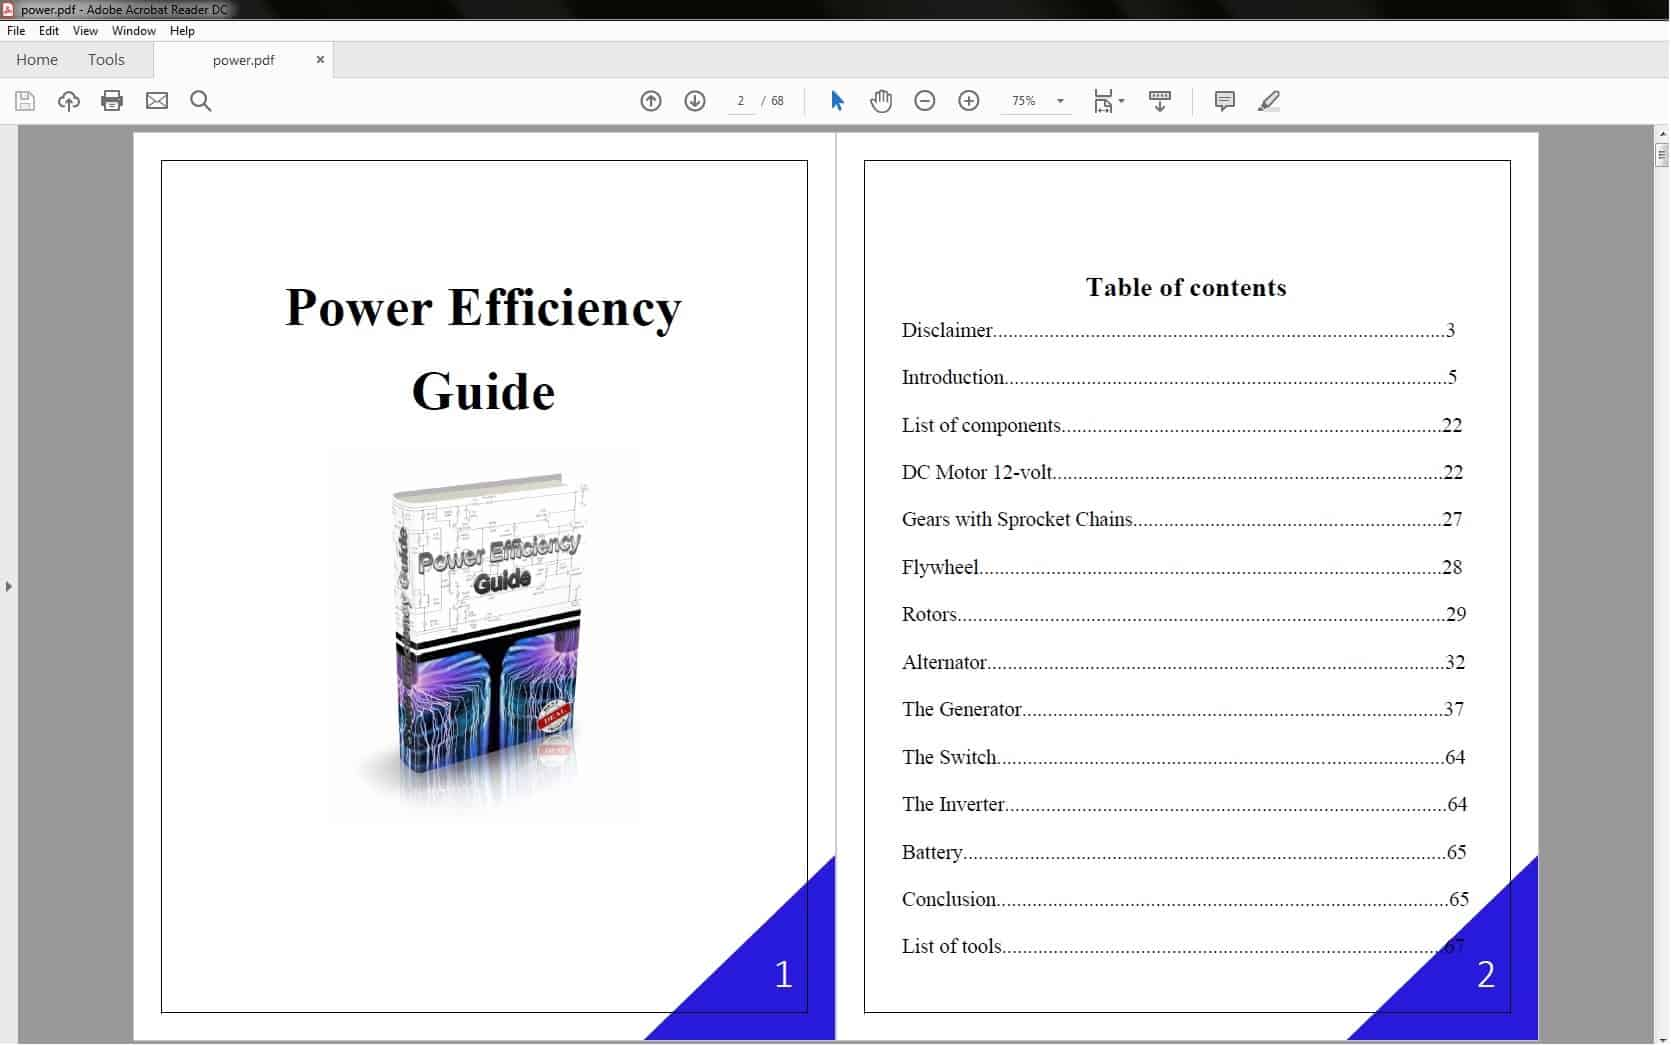 Power Efficiency Guide Review: Is This For Real And Does It